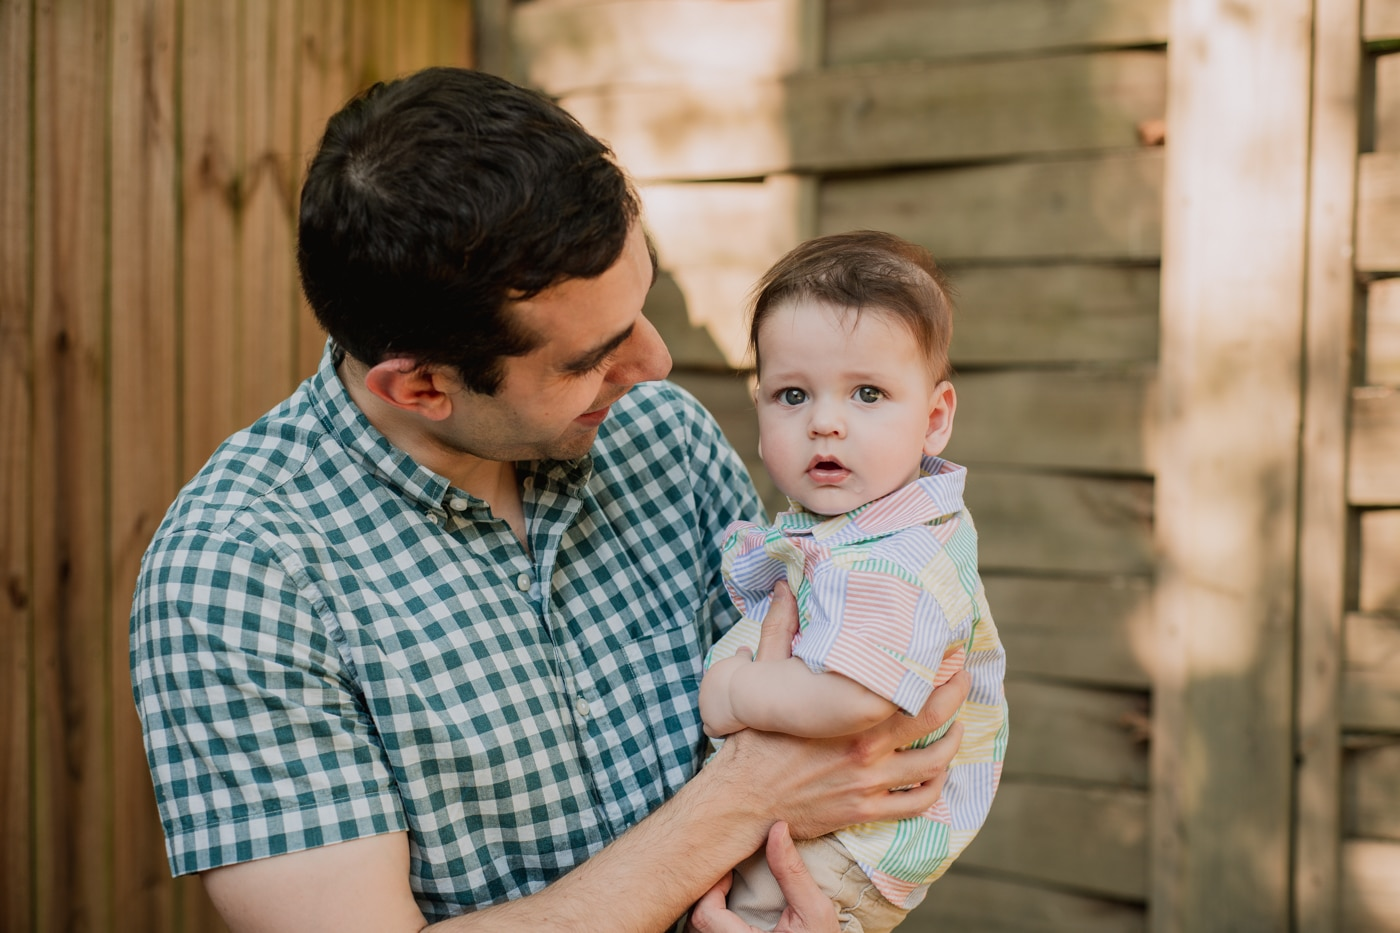 Dad holding his baby son during Lifestyle Family Photos in Atlanta Backyard by Raven Shutley Studios